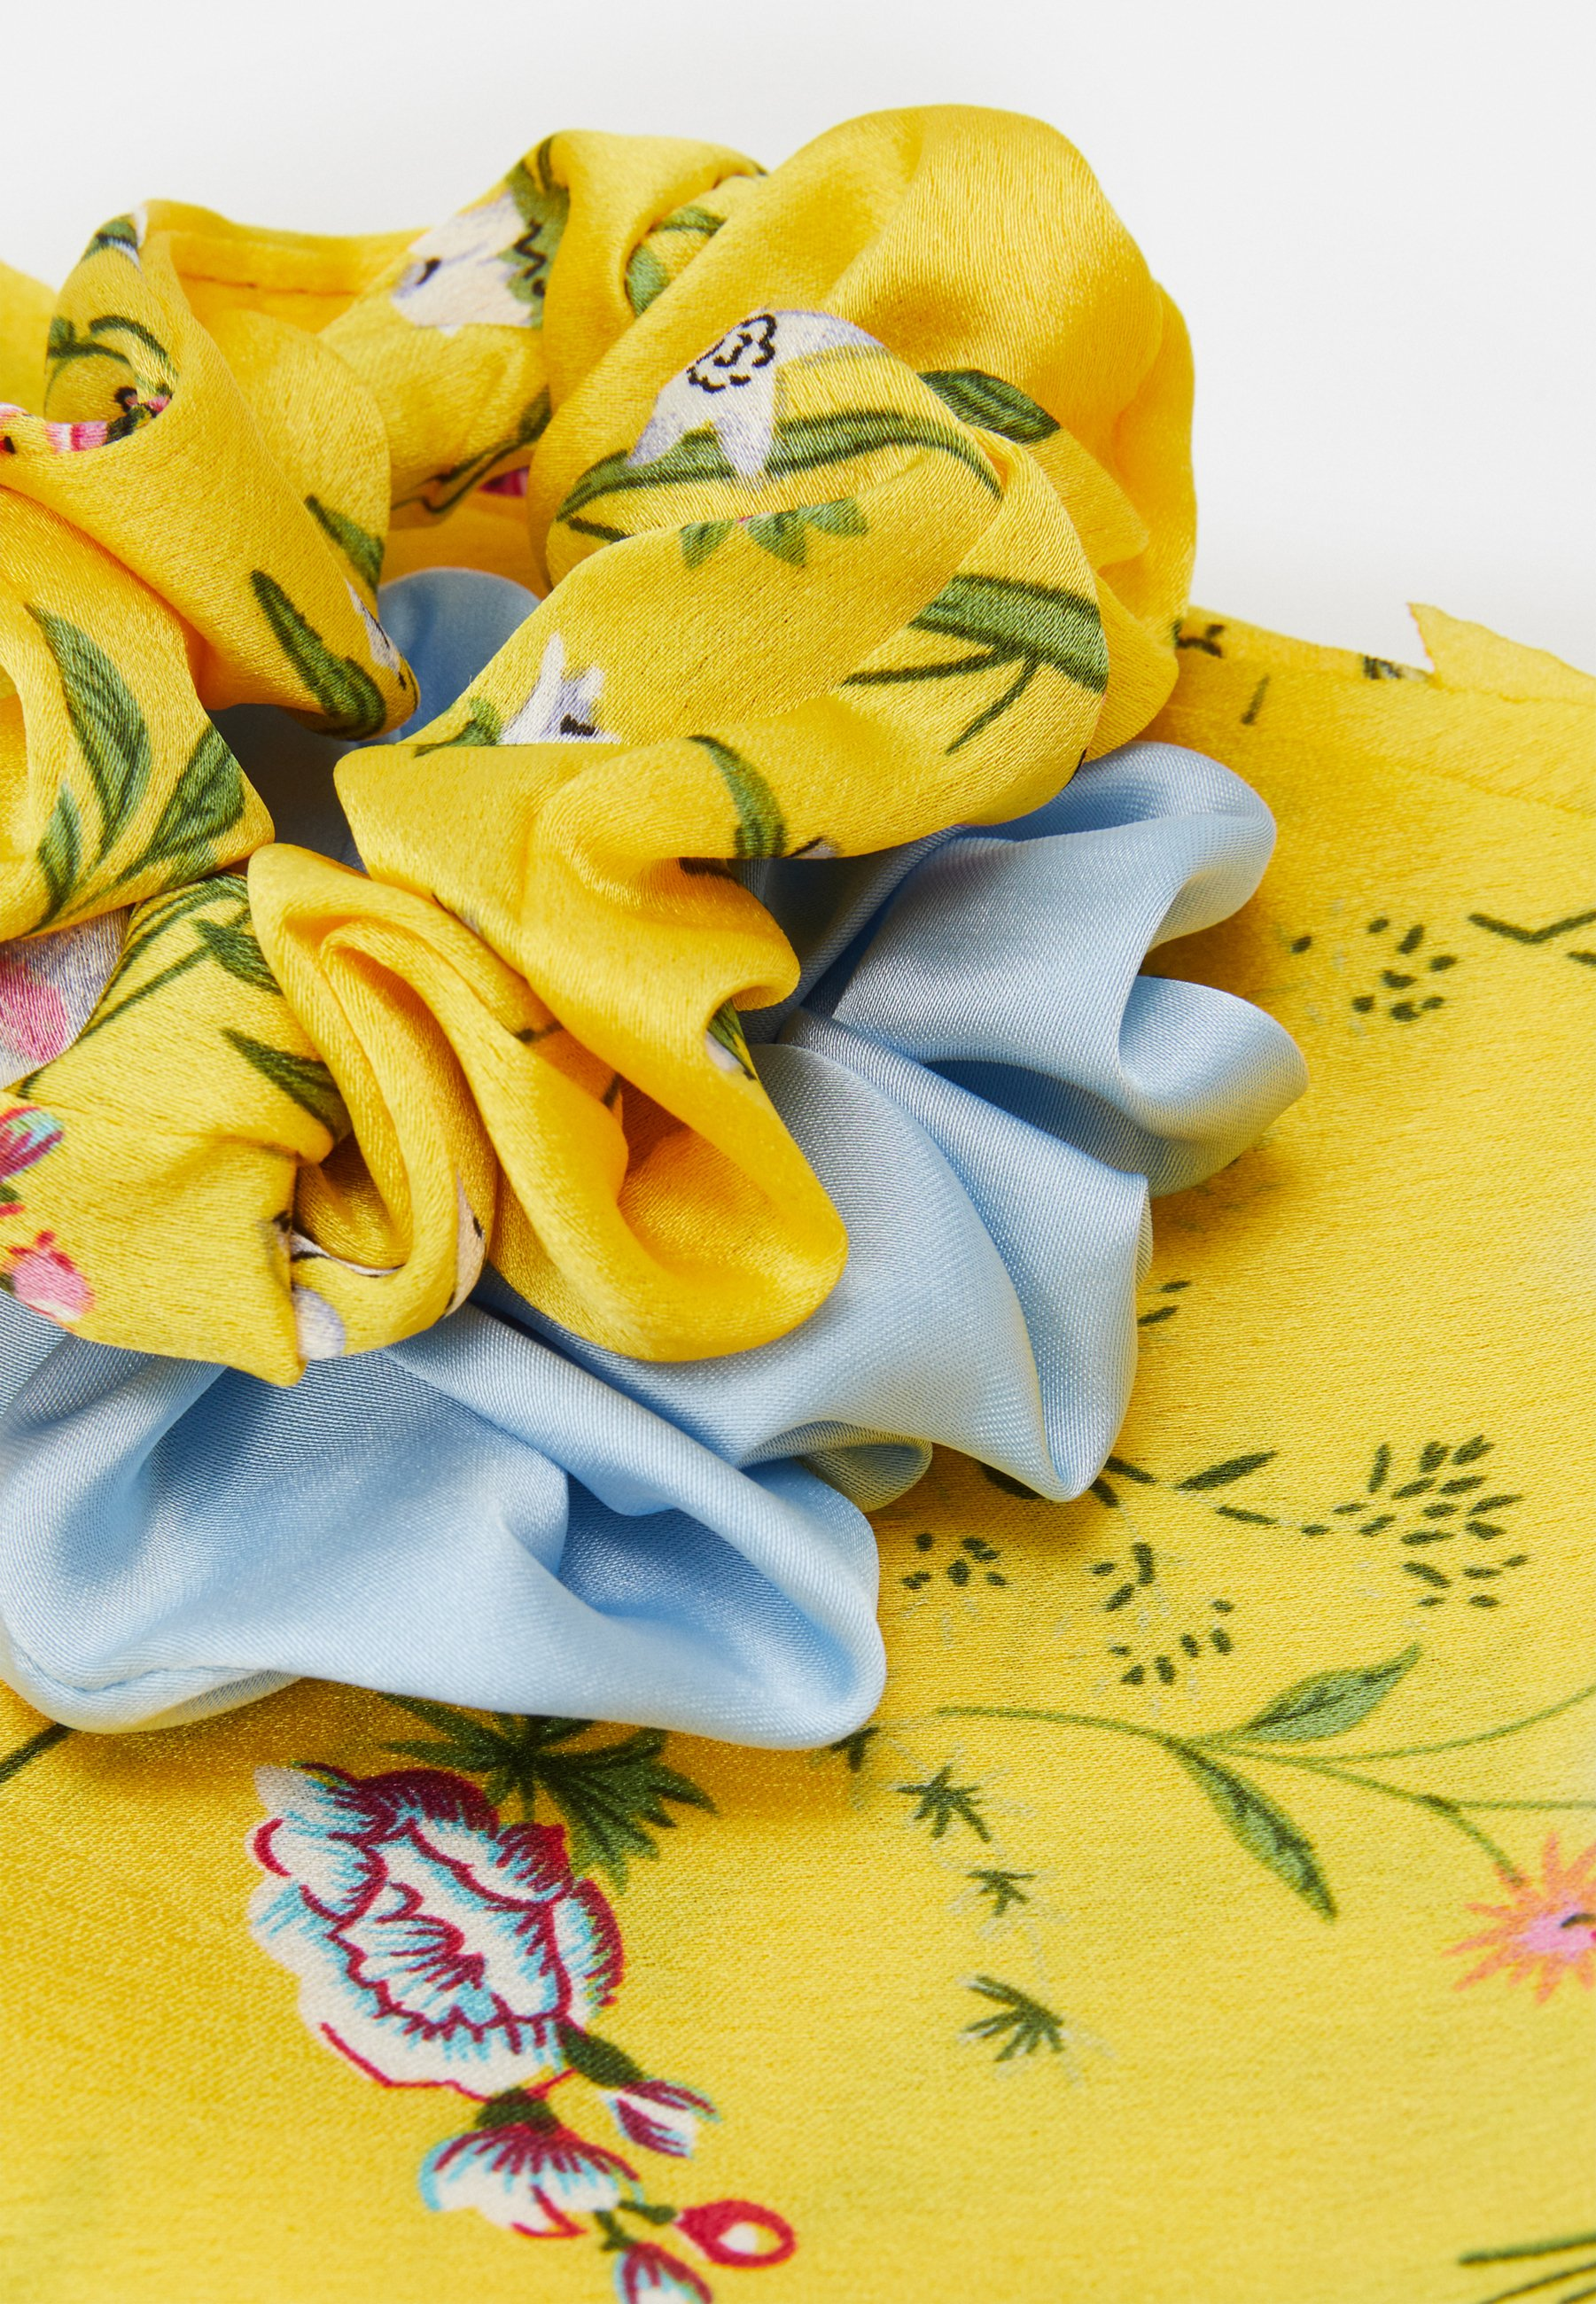 Pieces PCREMYBOW SCRUNCHIE 2 PACK - Hair Styling Accessory - airy blue/yellow/flerfarget sTFvtQl2zLAi1Yt